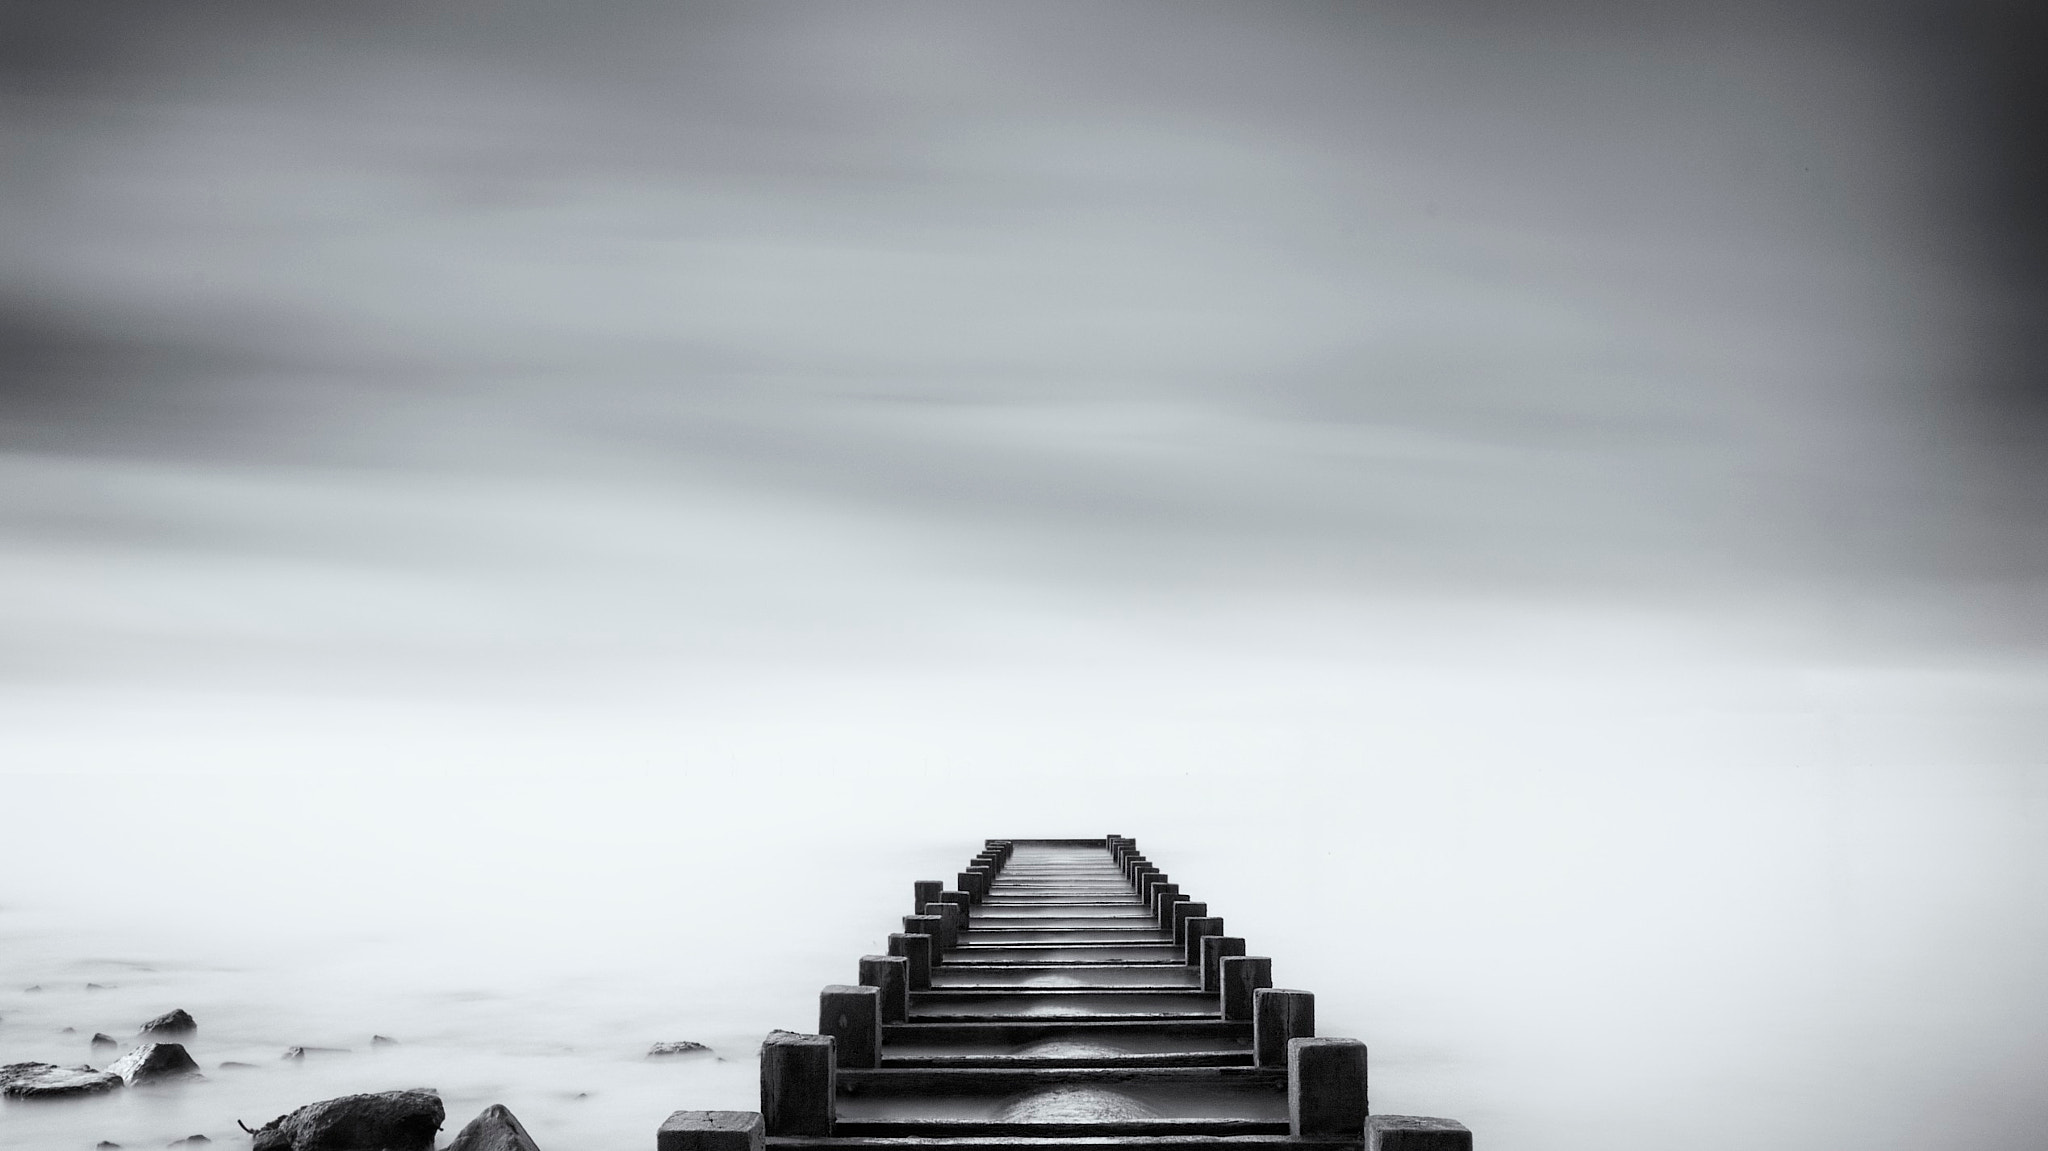 Photograph A way out II by Duncan Green on 500px